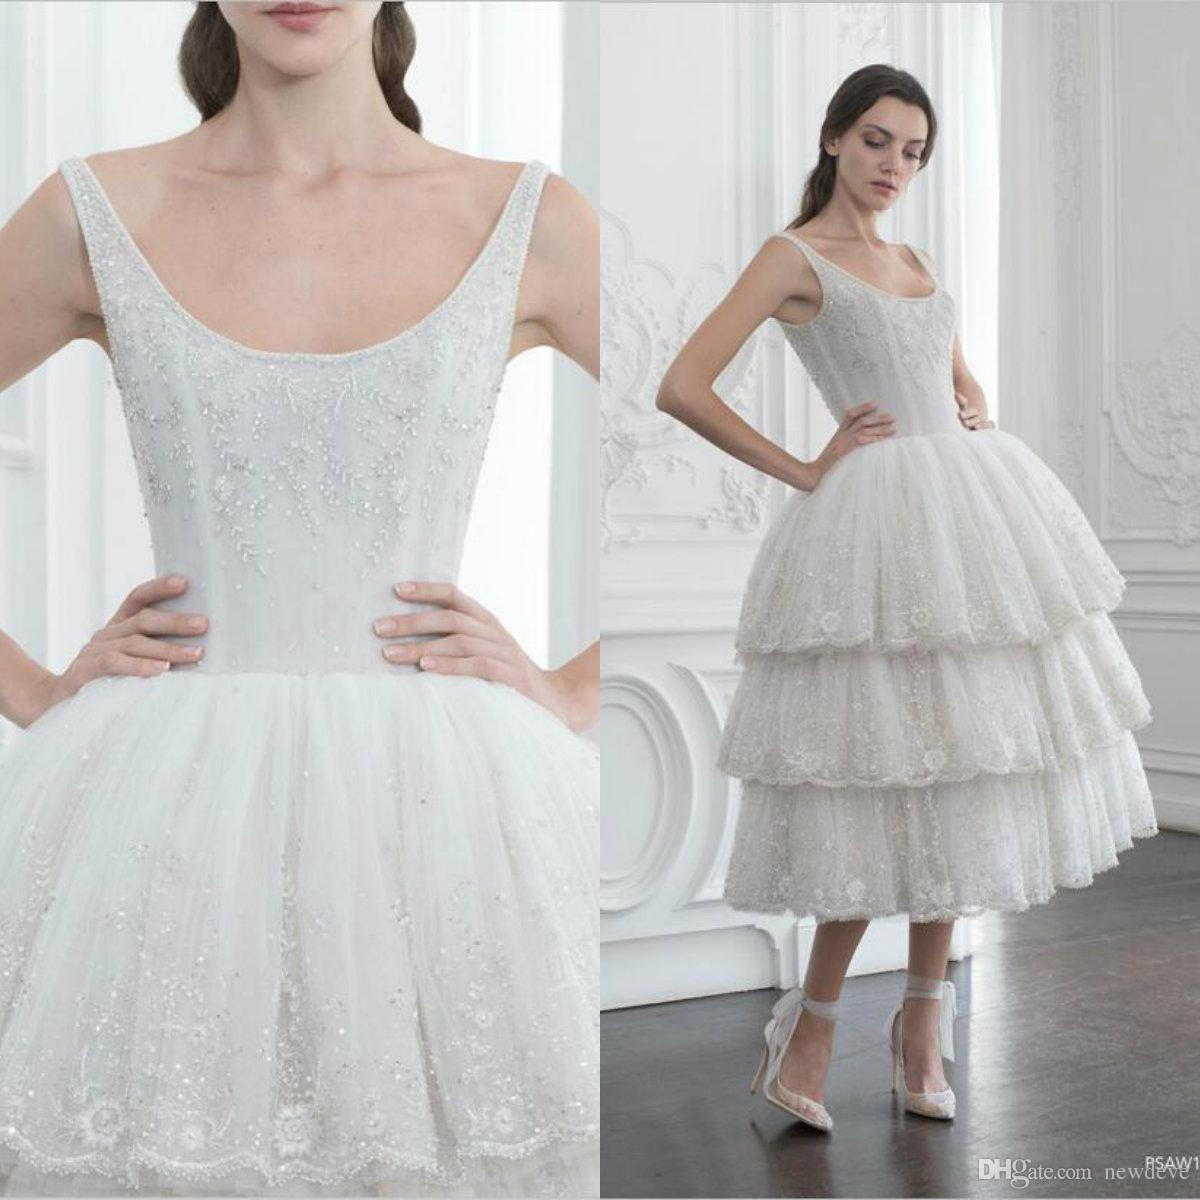 2019 Tiered Polo Sebastian Dresses With Beads Collar Ball Gown Art Deco-inspired Neck Sheer Evening Dresses Ankle Length Formal Party Dress